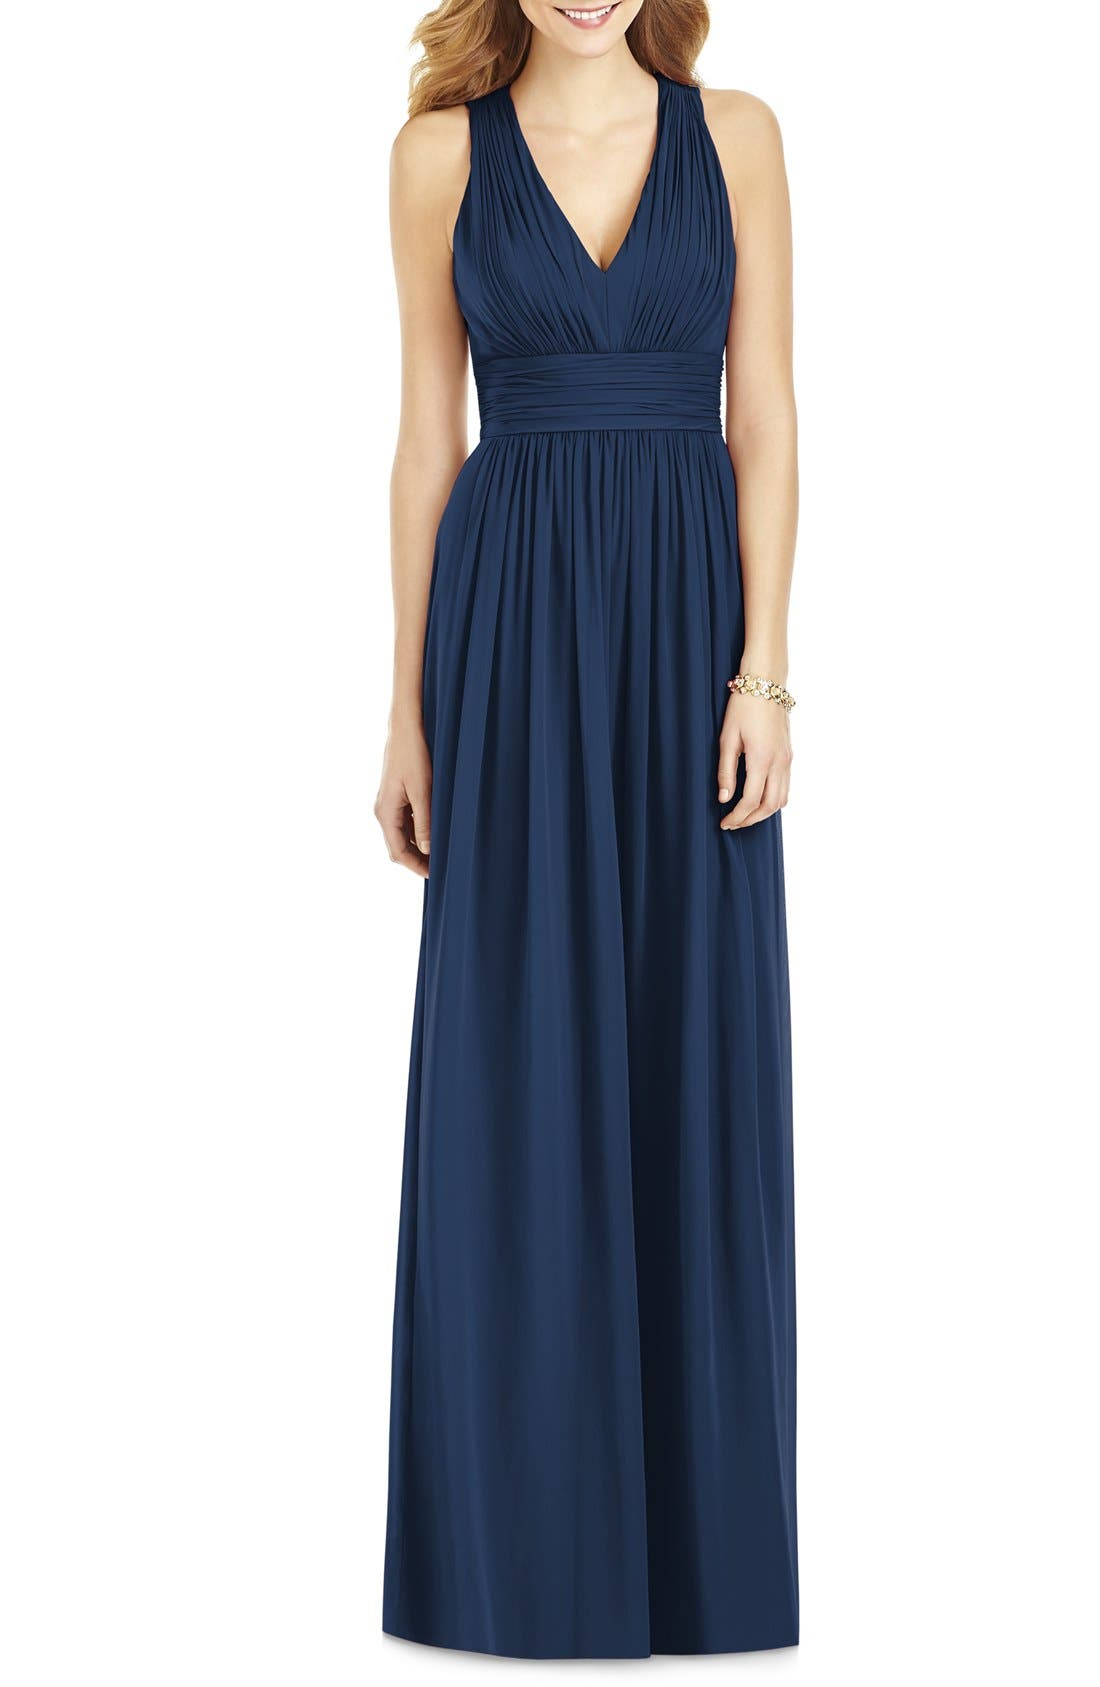 Crisscross Back Ruched Chiffon V-Neck Gown,                         Main,                         color, 405